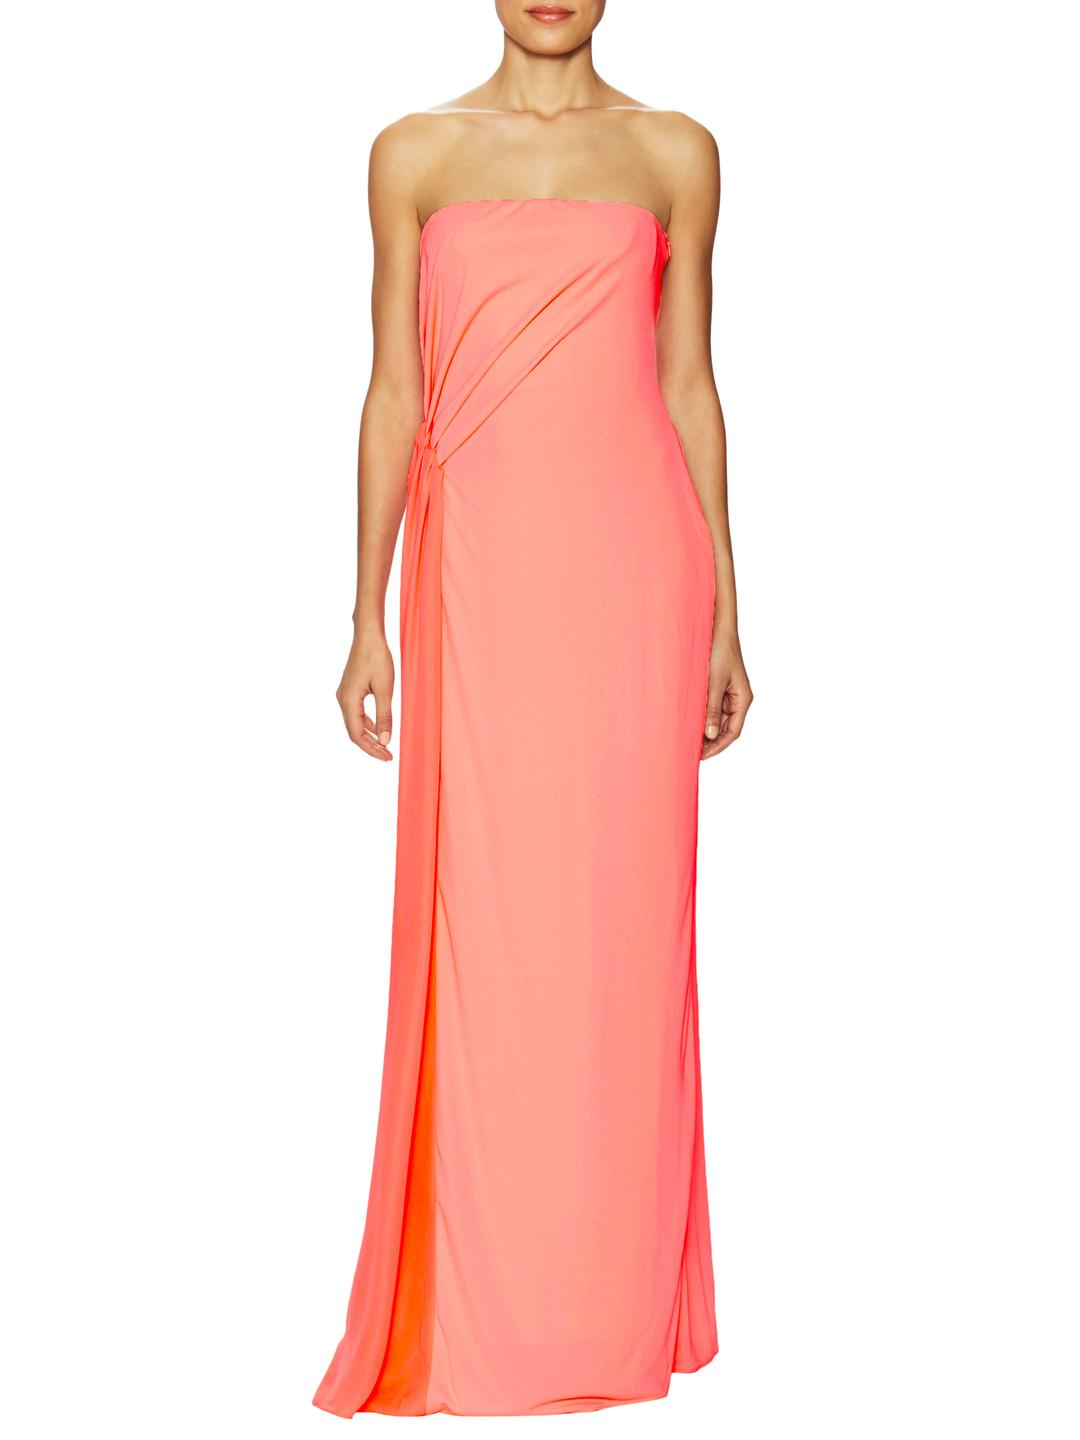 Lyst - Halston Heritage Draped Pleated Evening Gown in Pink